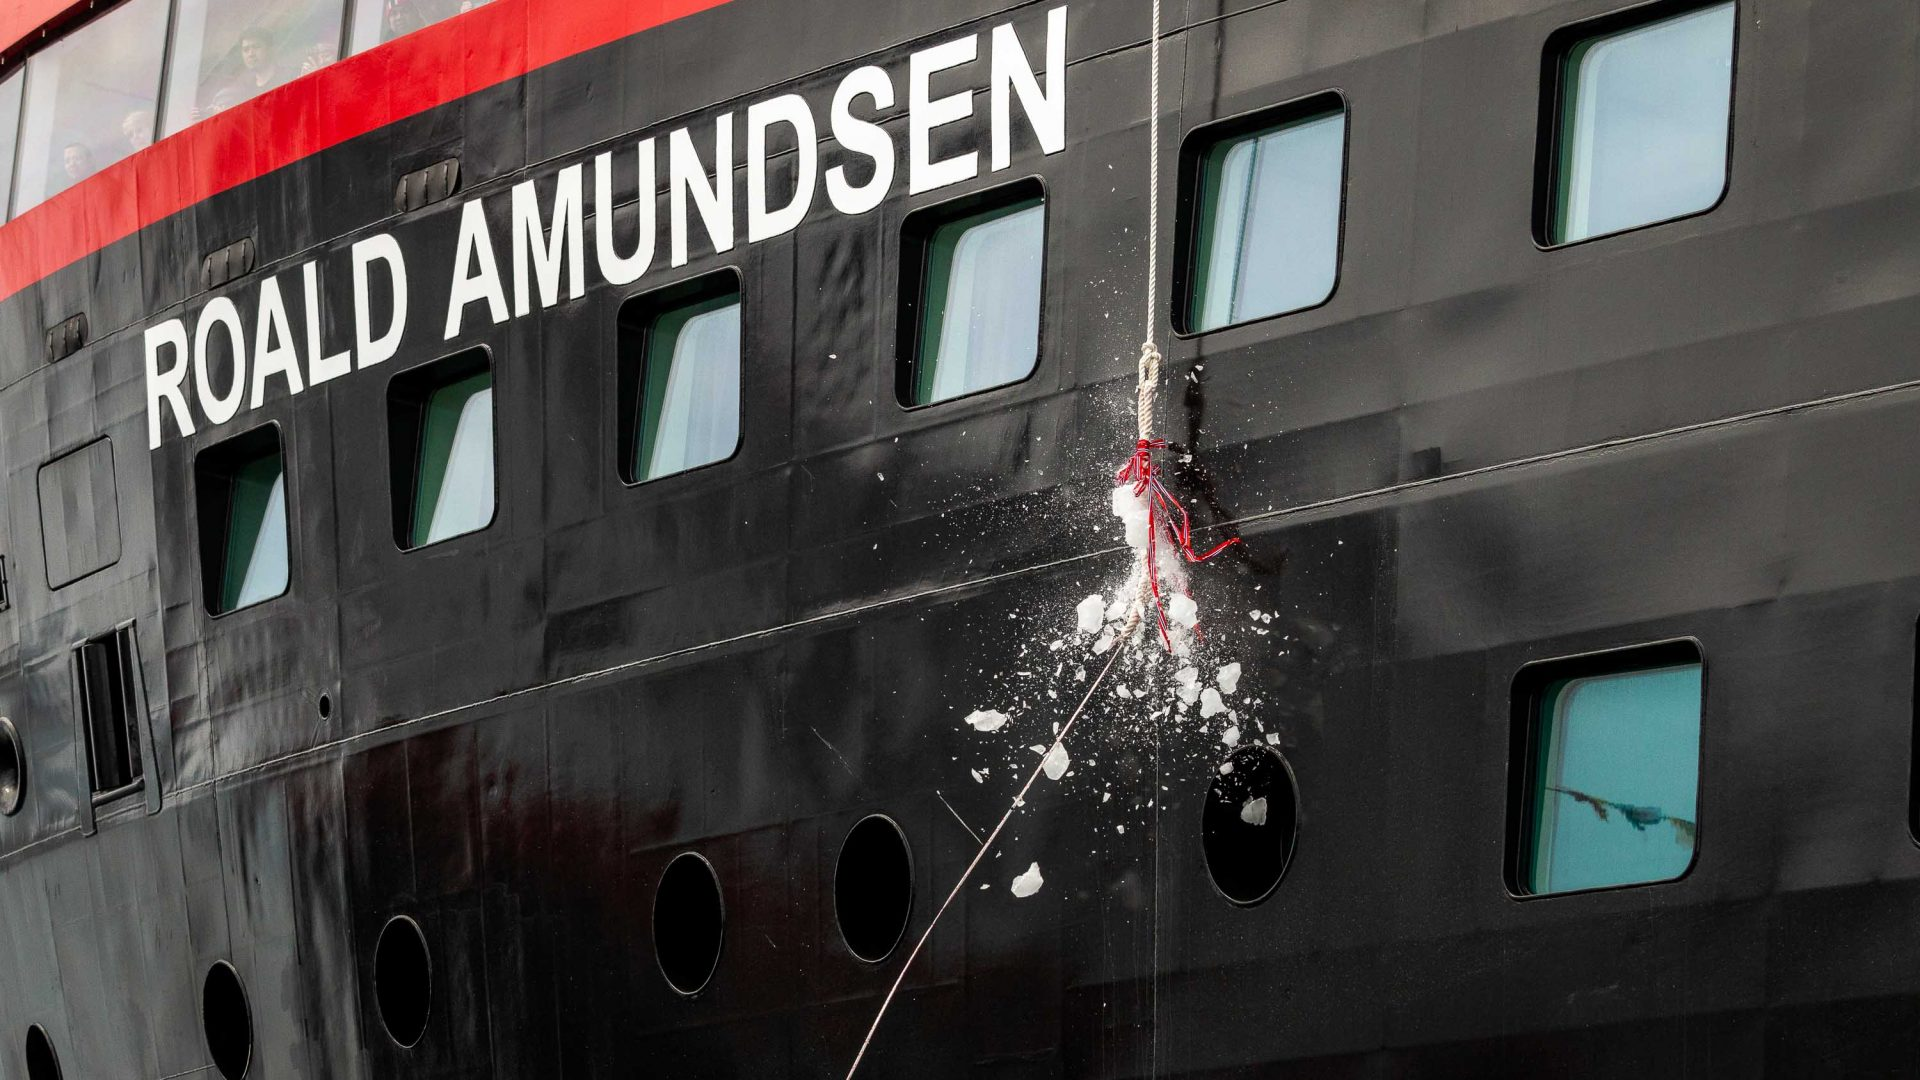 The naming ceremony_for the cruise ship MS Roald Amundsen.